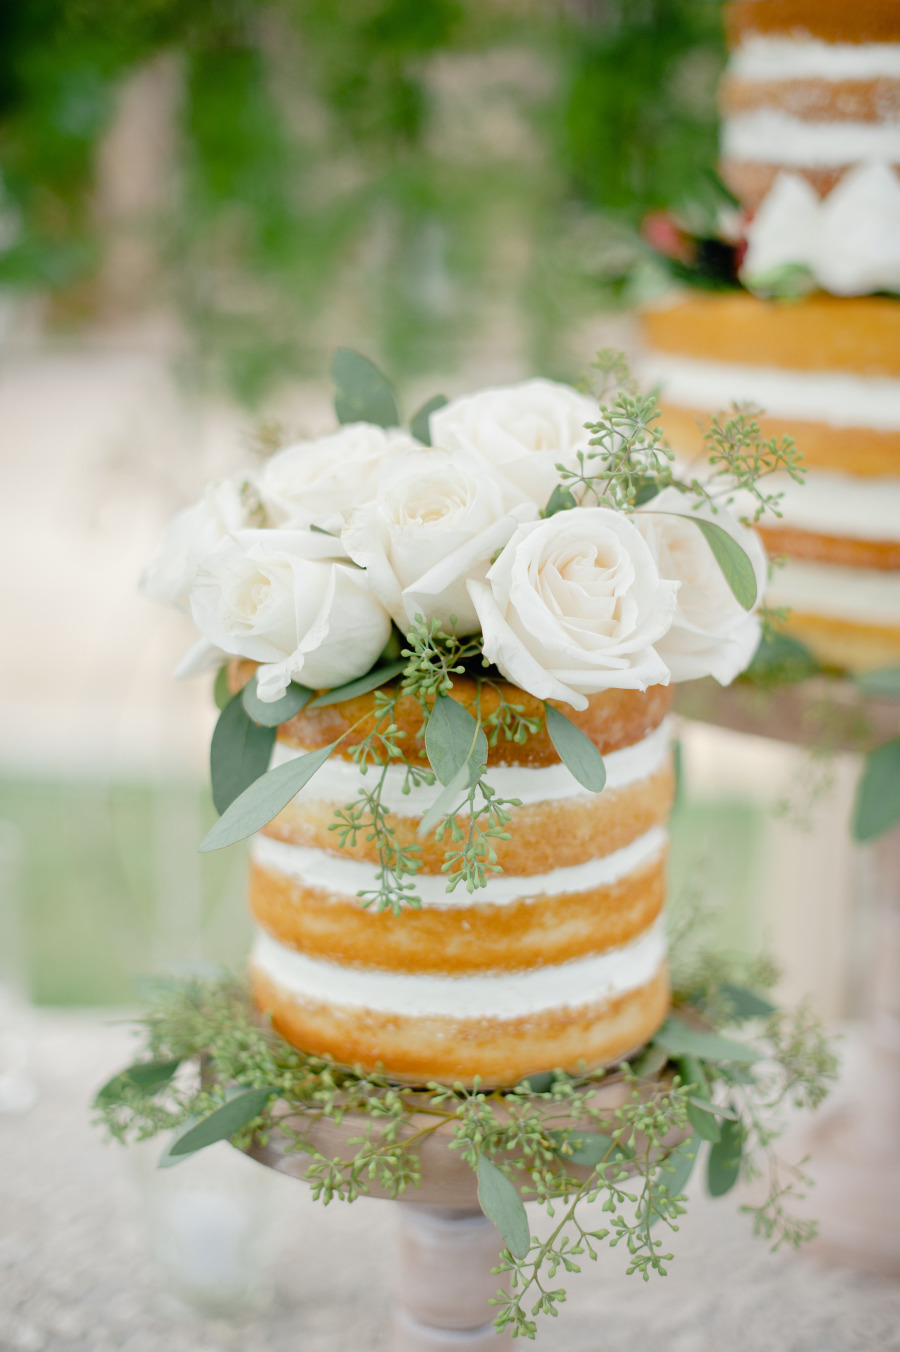 Summer Wedding Cakes Photos,summer wedding cake ideas